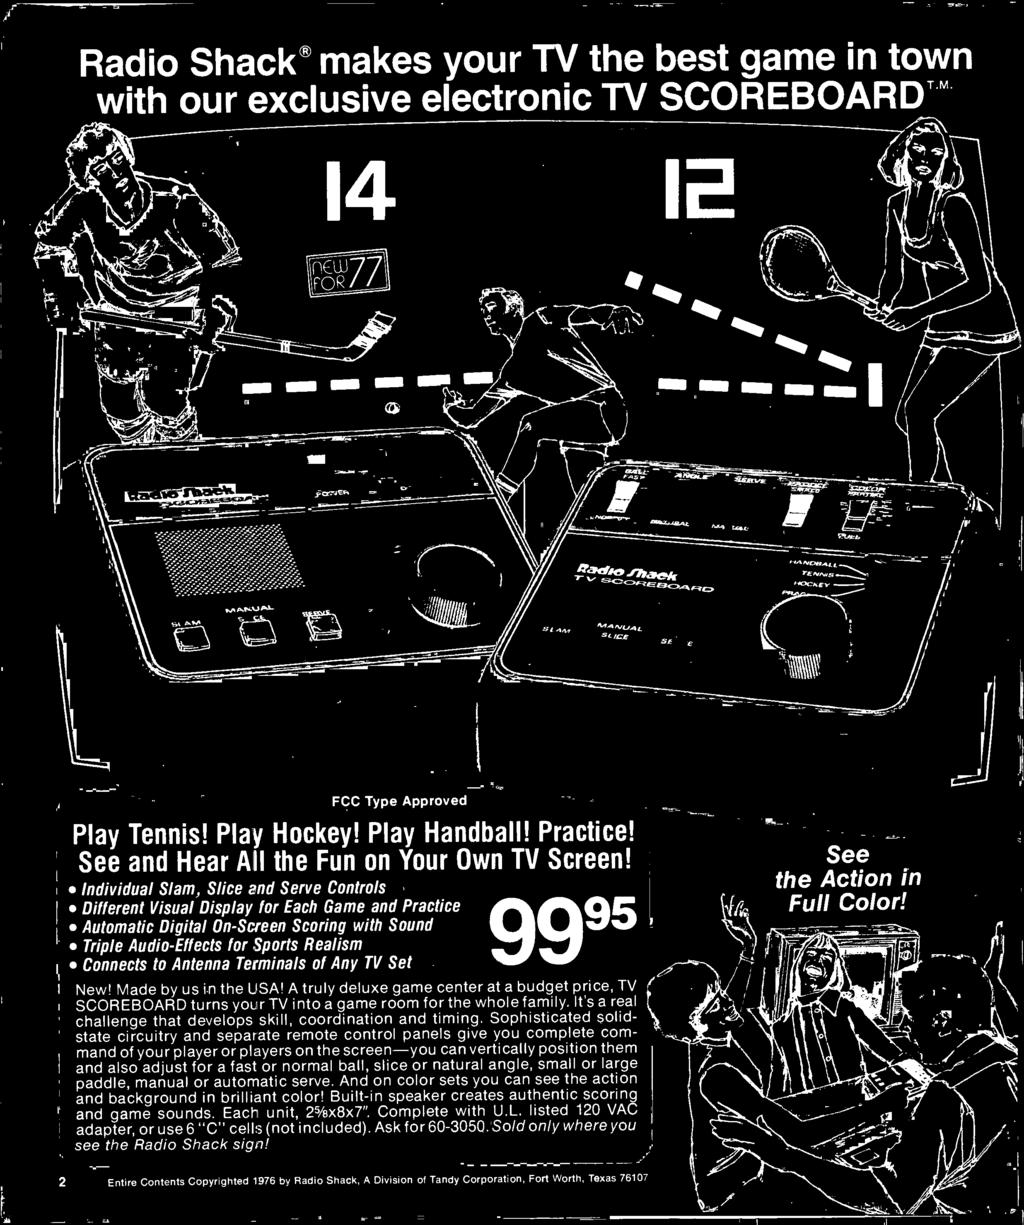 1977 Electronics Catalog Pdf Tone Generator By 2n4891 Electronic Projects Circuits Its A Real Challenge That Develops Skill Coordination And Timing